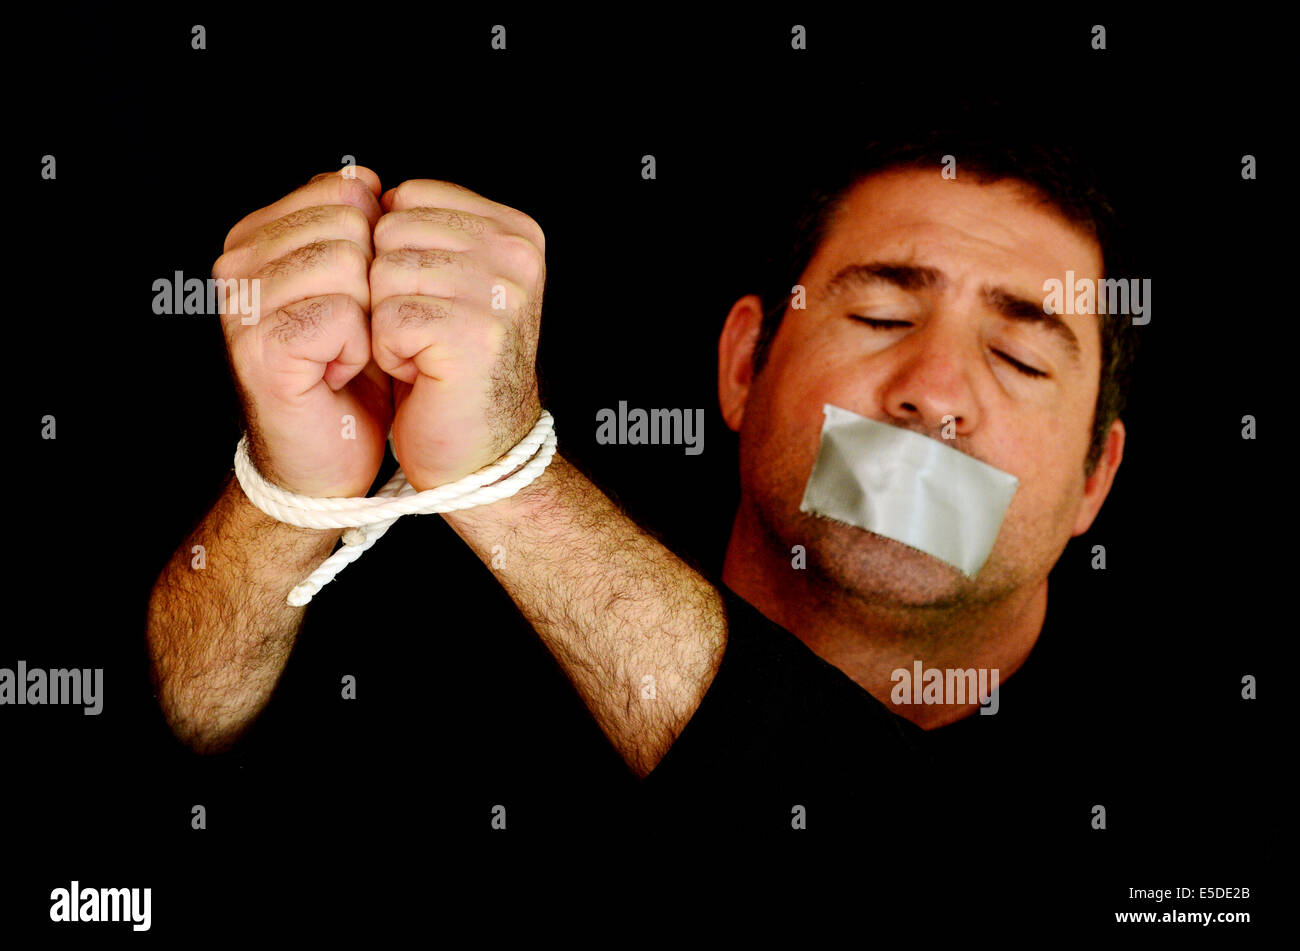 Missing kidnapped, abused, hostage, victim man with hands tied up with rope in emotional stress and pain, afraid, - Stock Image